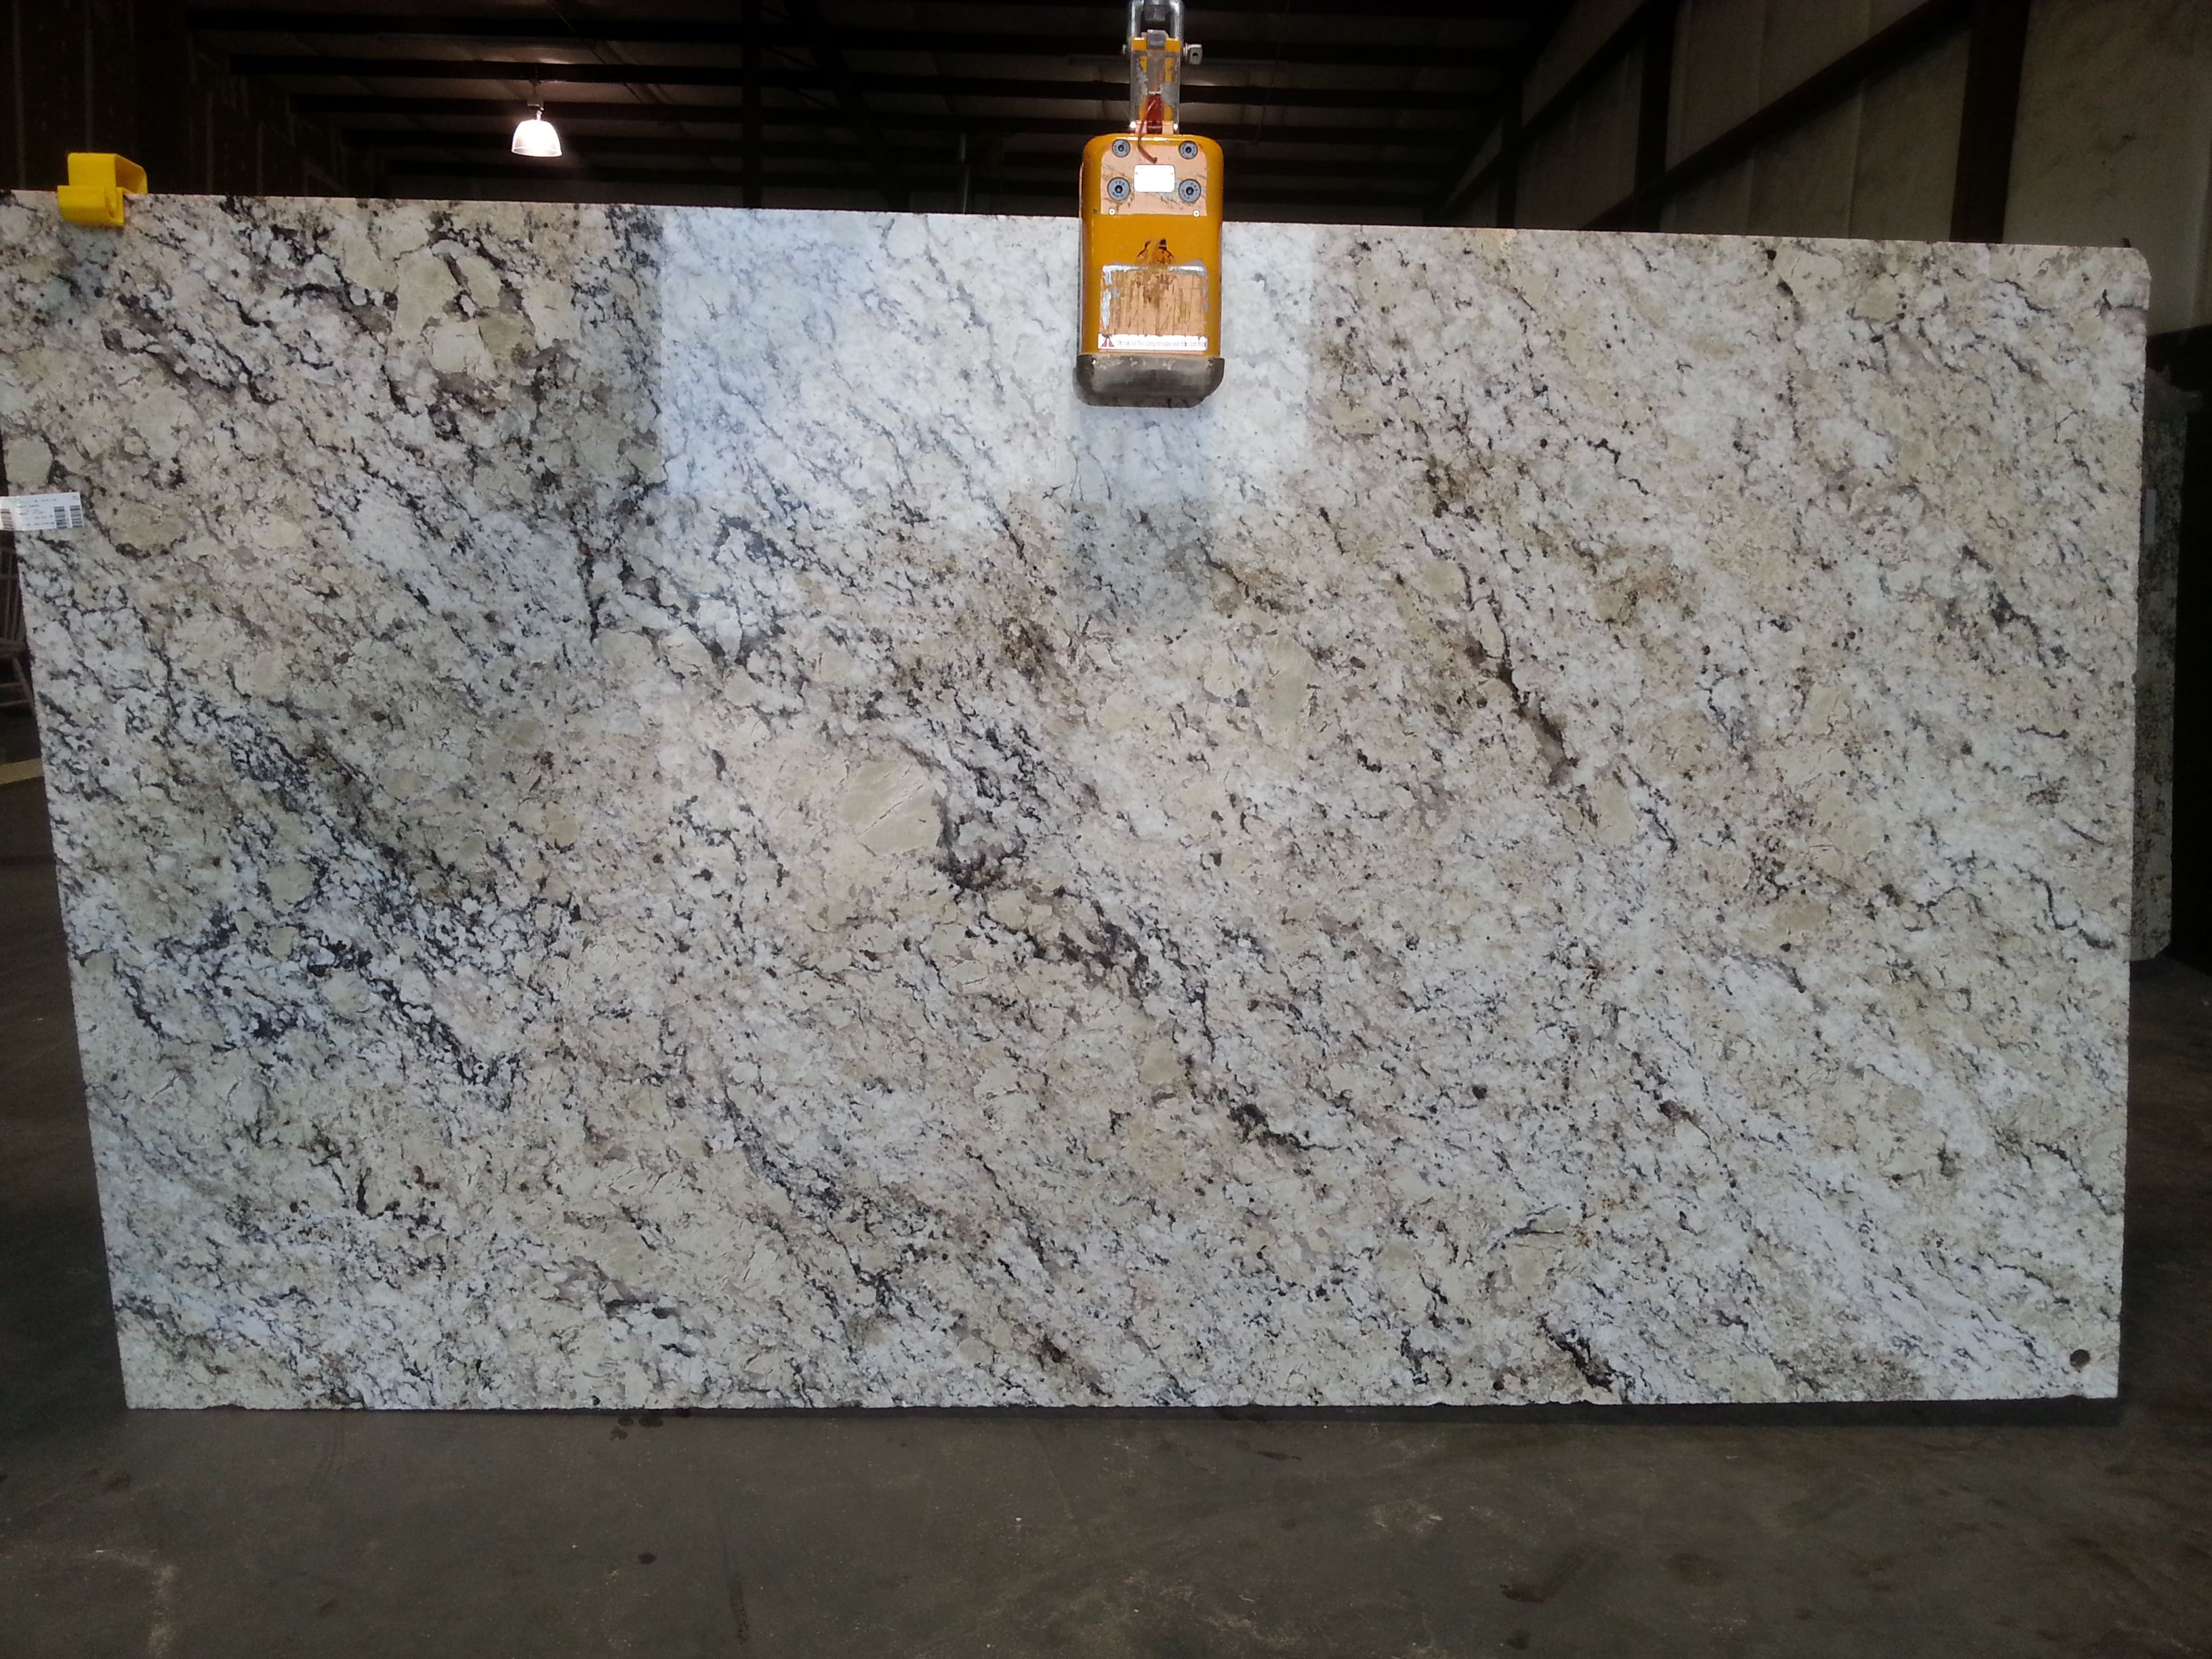 Branco Romano Granite Polished Countertop Slab Countertop